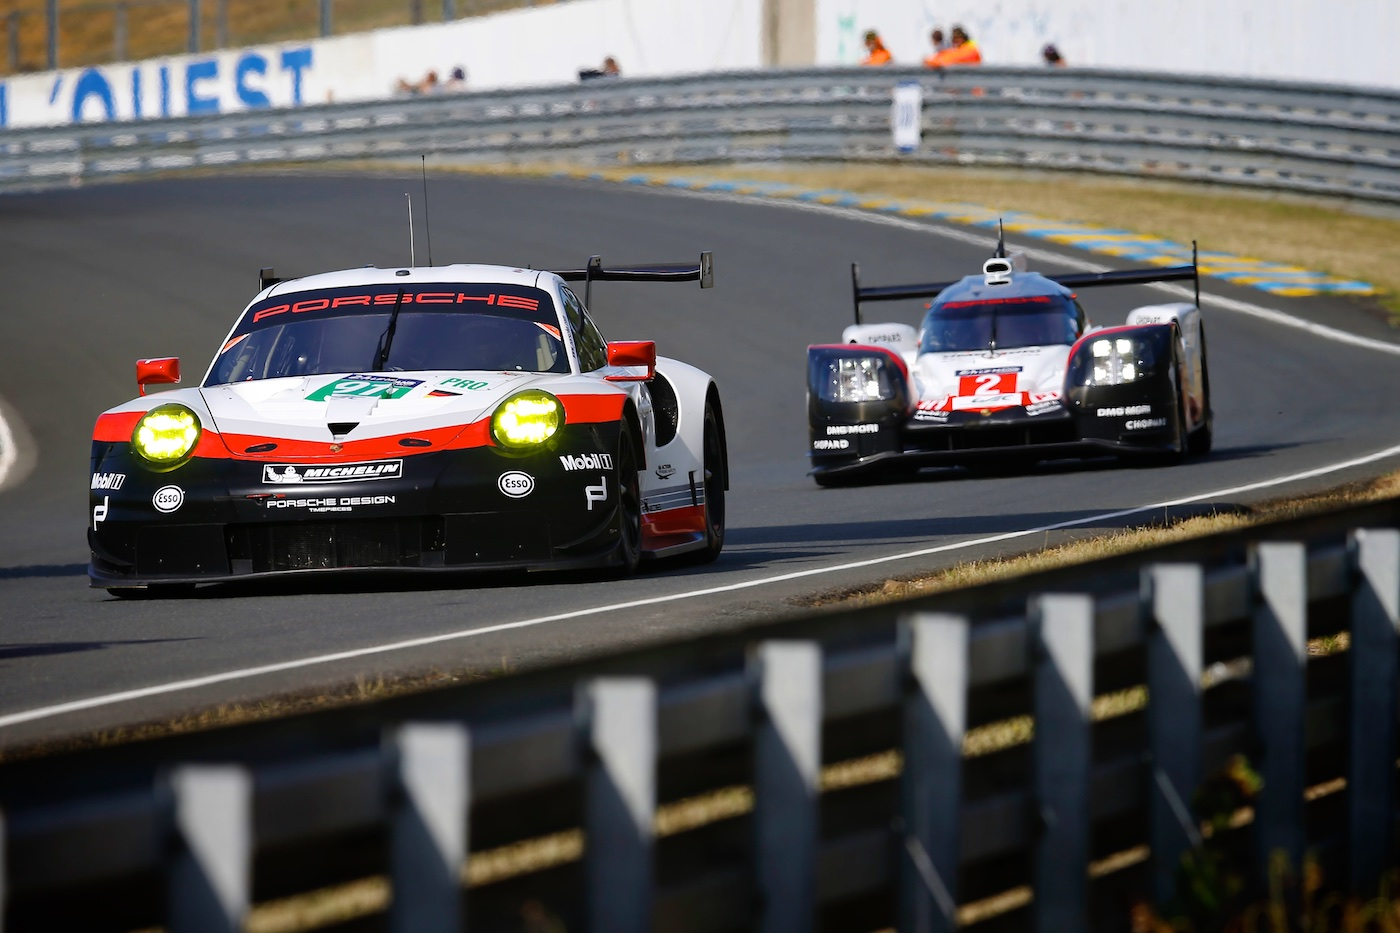 Le Mans Debut for New 911 RSR